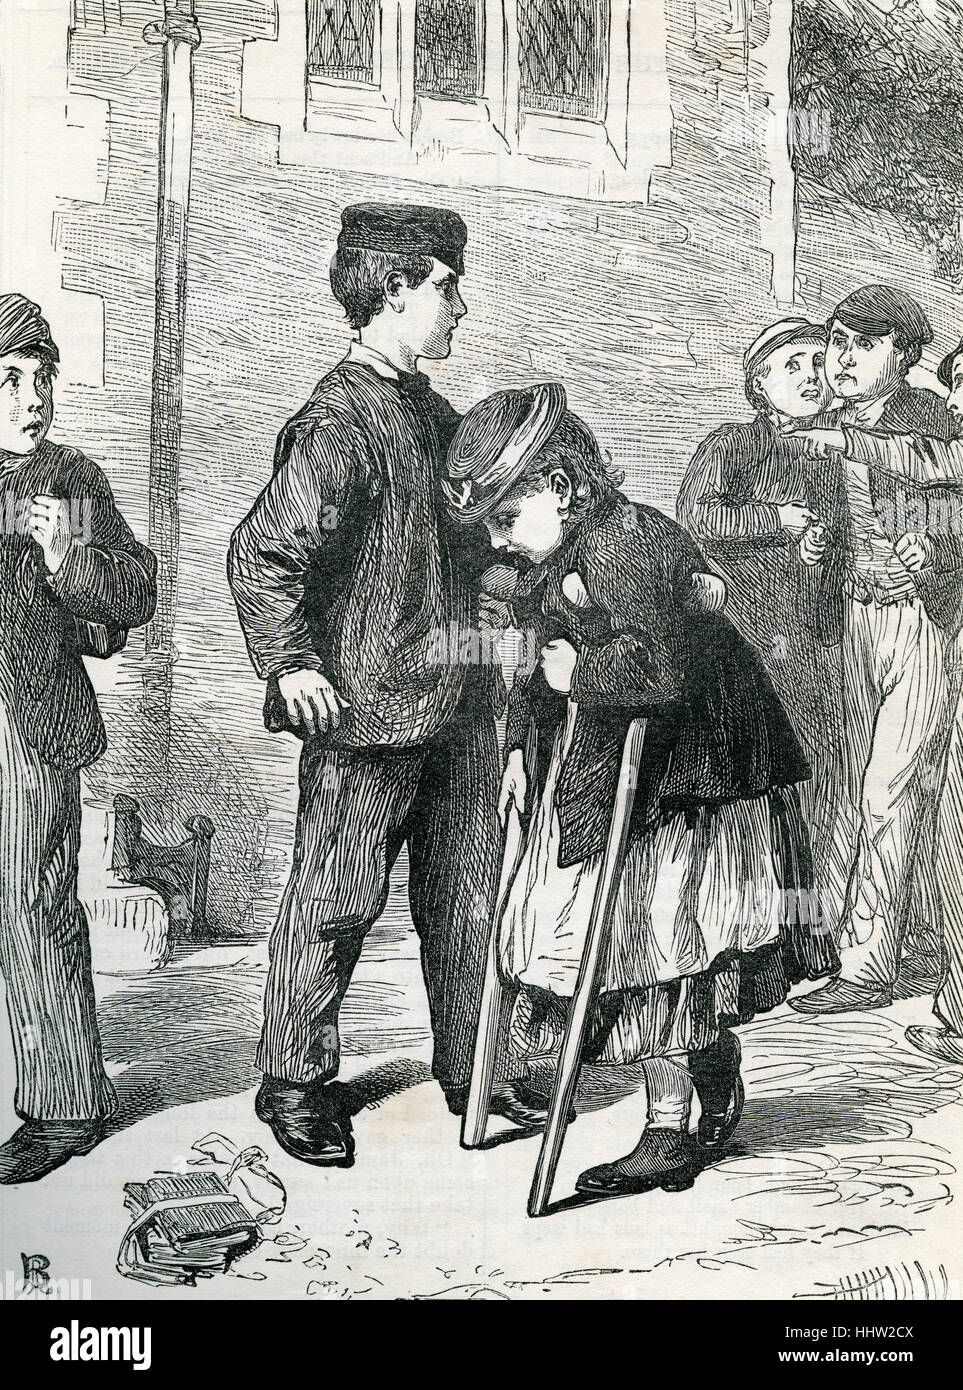 Young boy protects a crippled girl on crutches from a group of accusatory onlookers. After the illustration from - Stock Image